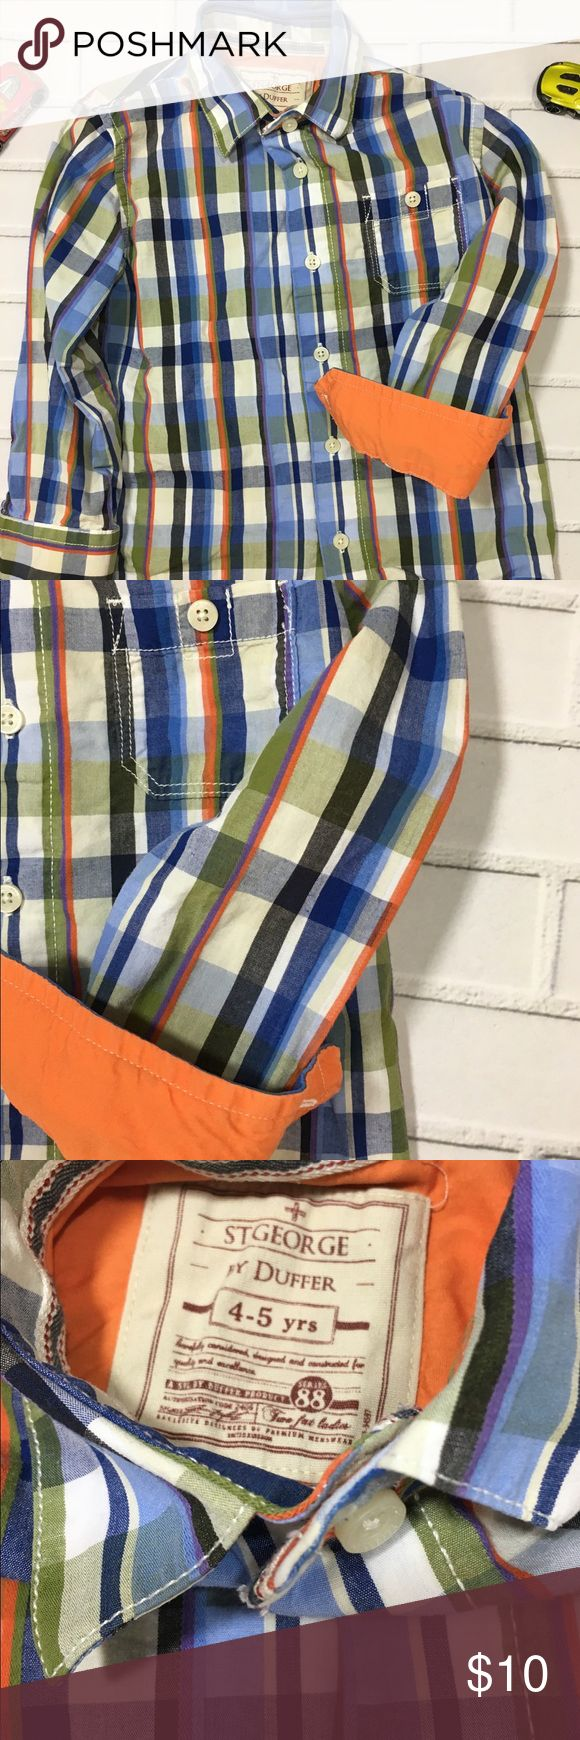 Little Boys button down shirt from UK size 4-5 Y Little Boys Plaid Button Down Shirt with sleeves that can be cuffed to show orange. UK brand St. George by Duffer. Size 4-5 Y. Very Good Condition. St George by Duffer Shirts & Tops Button Down Shirts